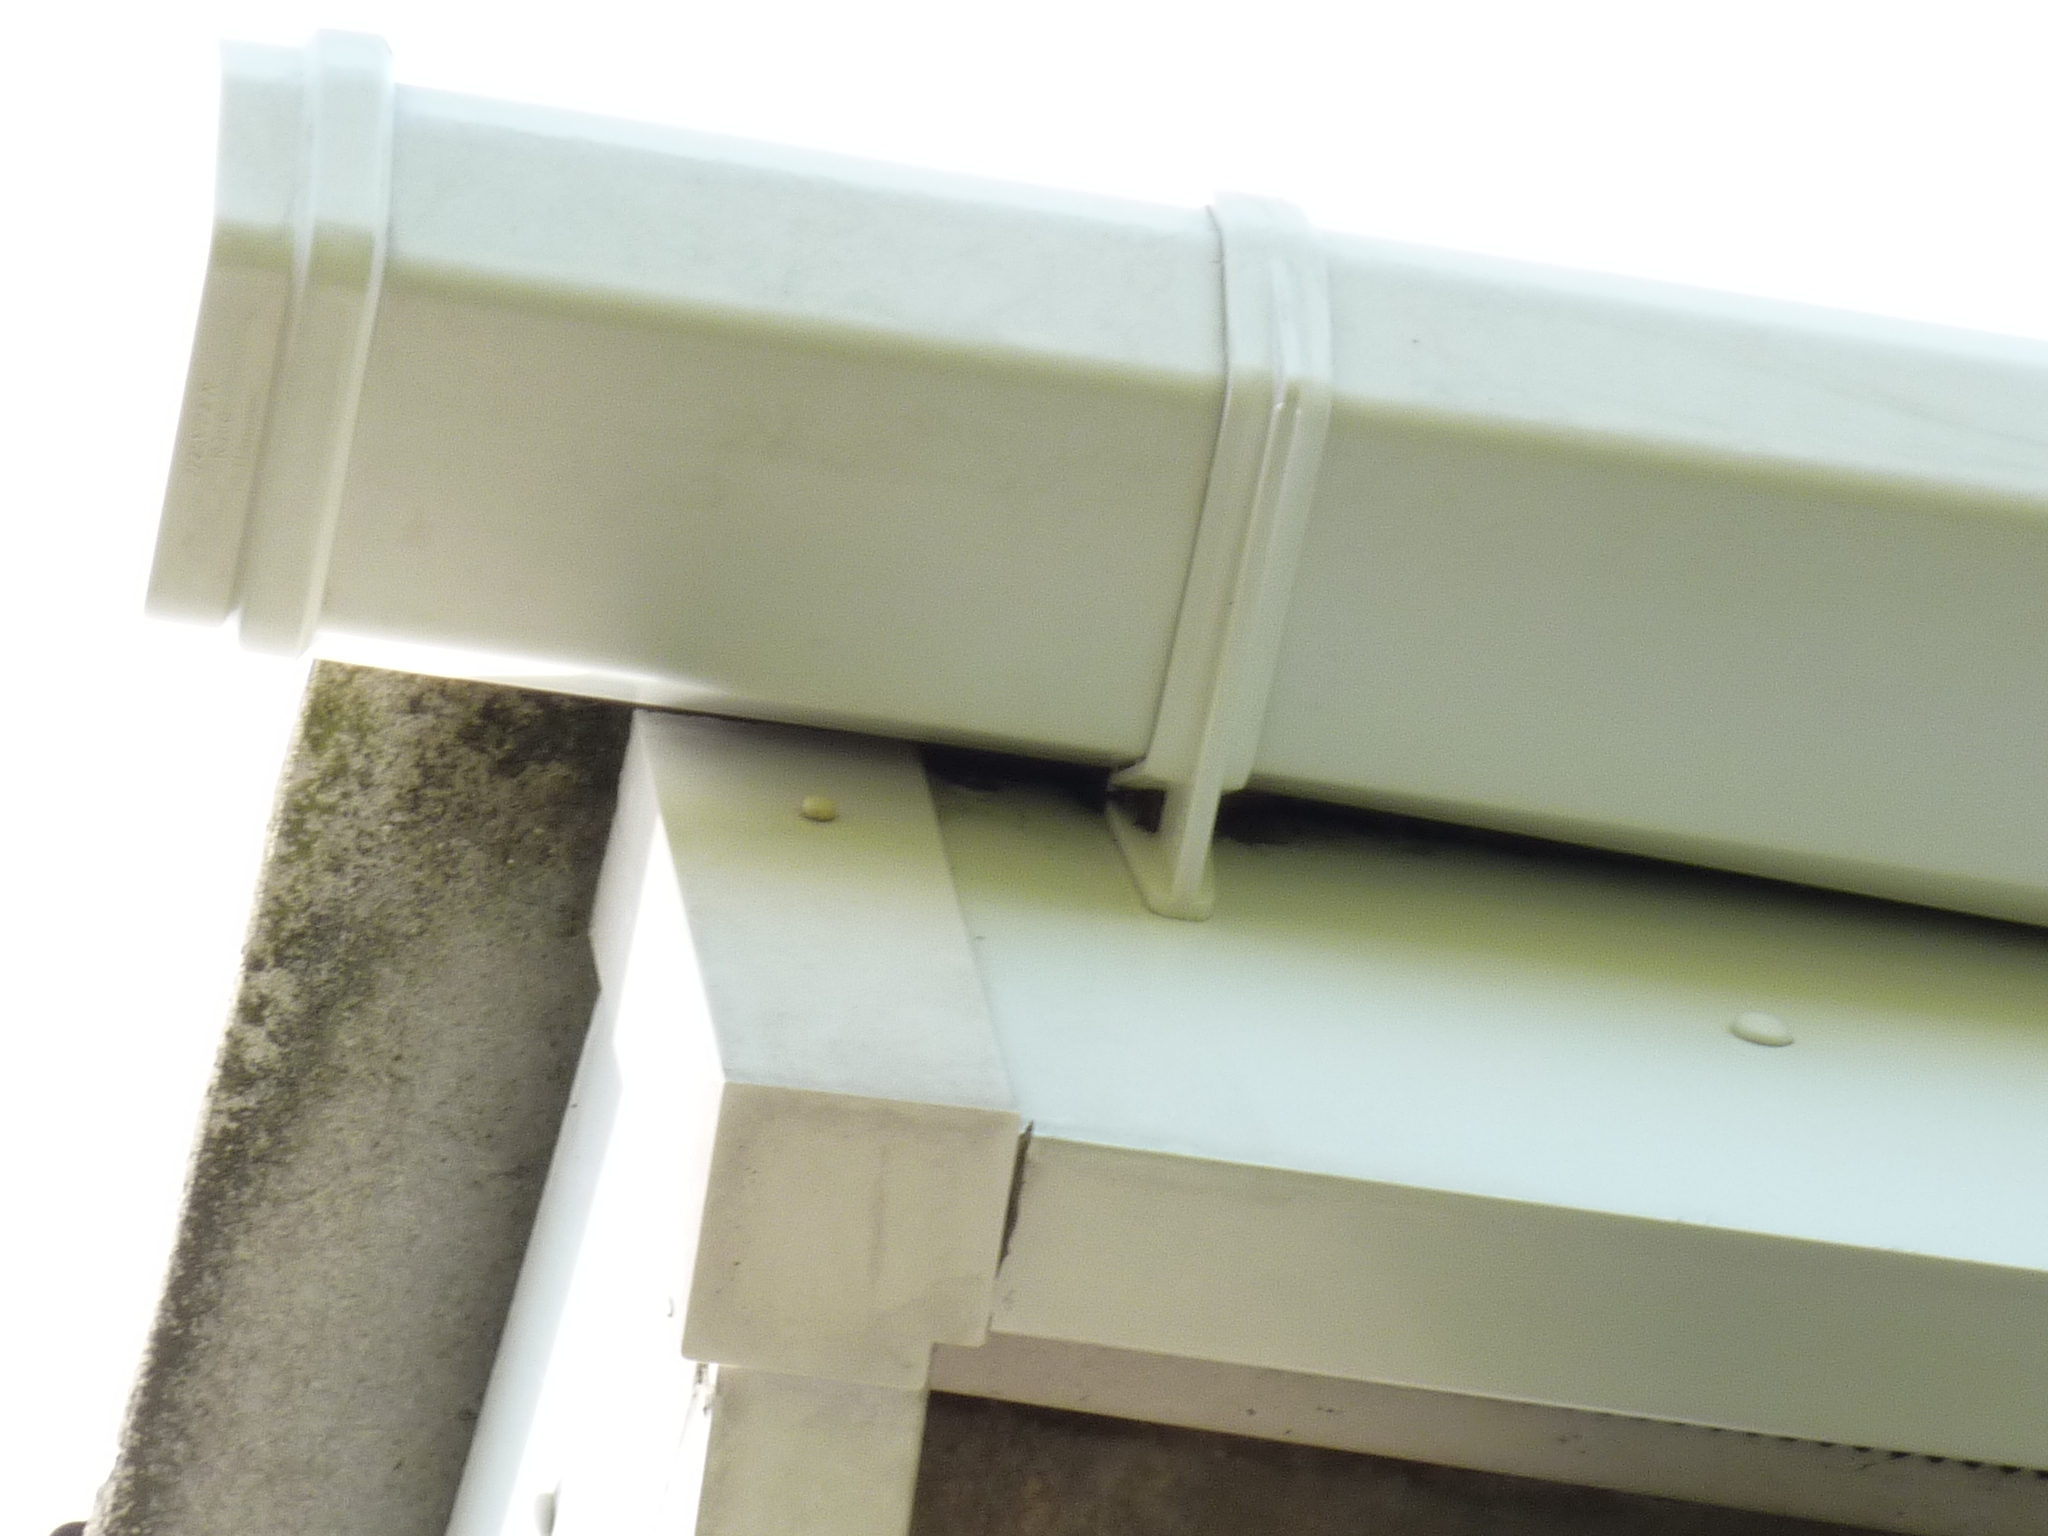 unblocked repaired cleaned gutters barton scunthorpe